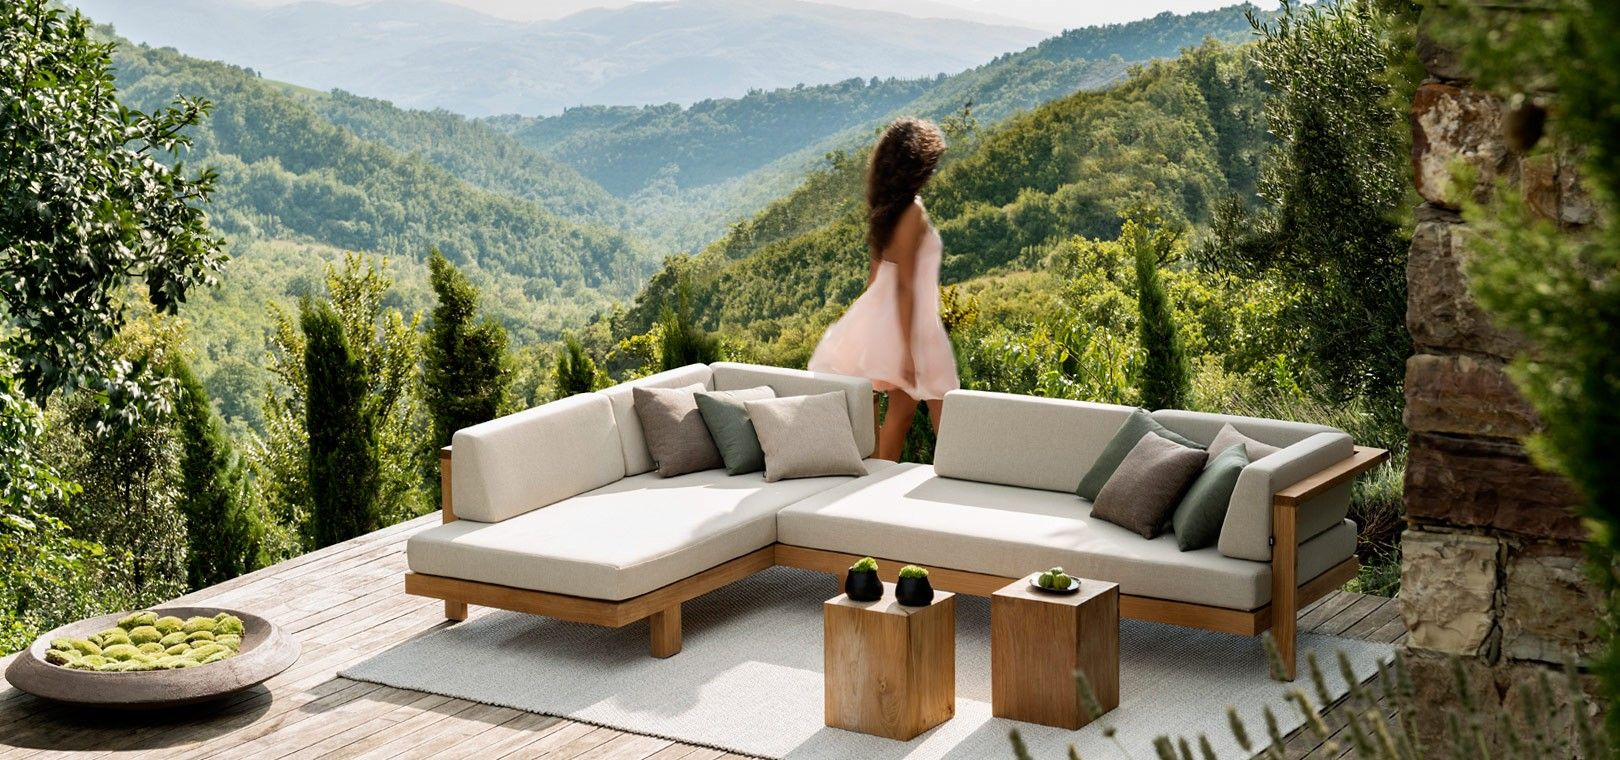 Pue Sofa Is An Elegant Design By Andrei Munteanu, For Outdoor Use ... Outdoor Mobel Set Tribu